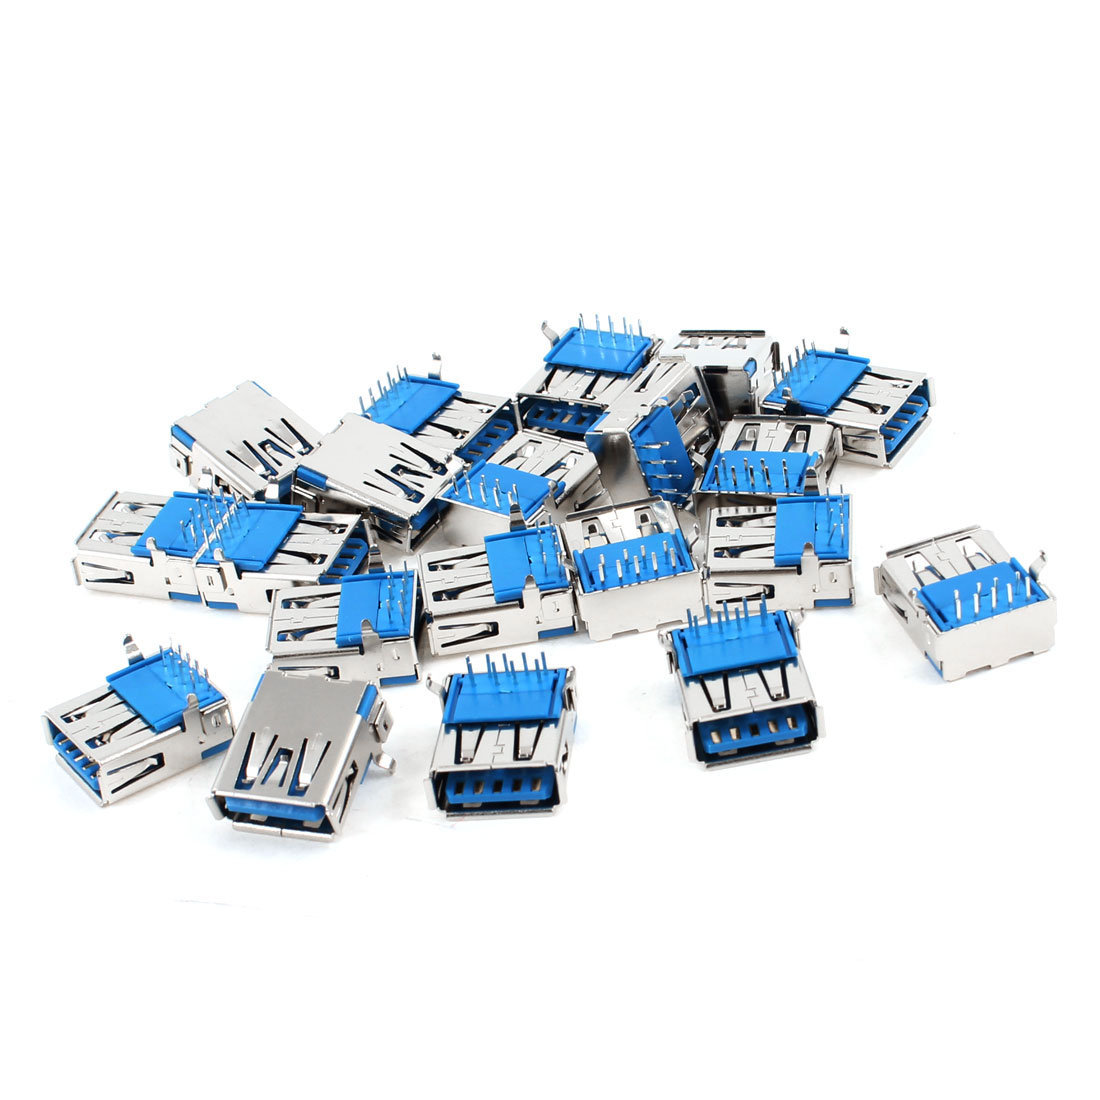 20 Pcs USB 3.0 Type A Female Right Angle 9-Pin DIP Jack Socket